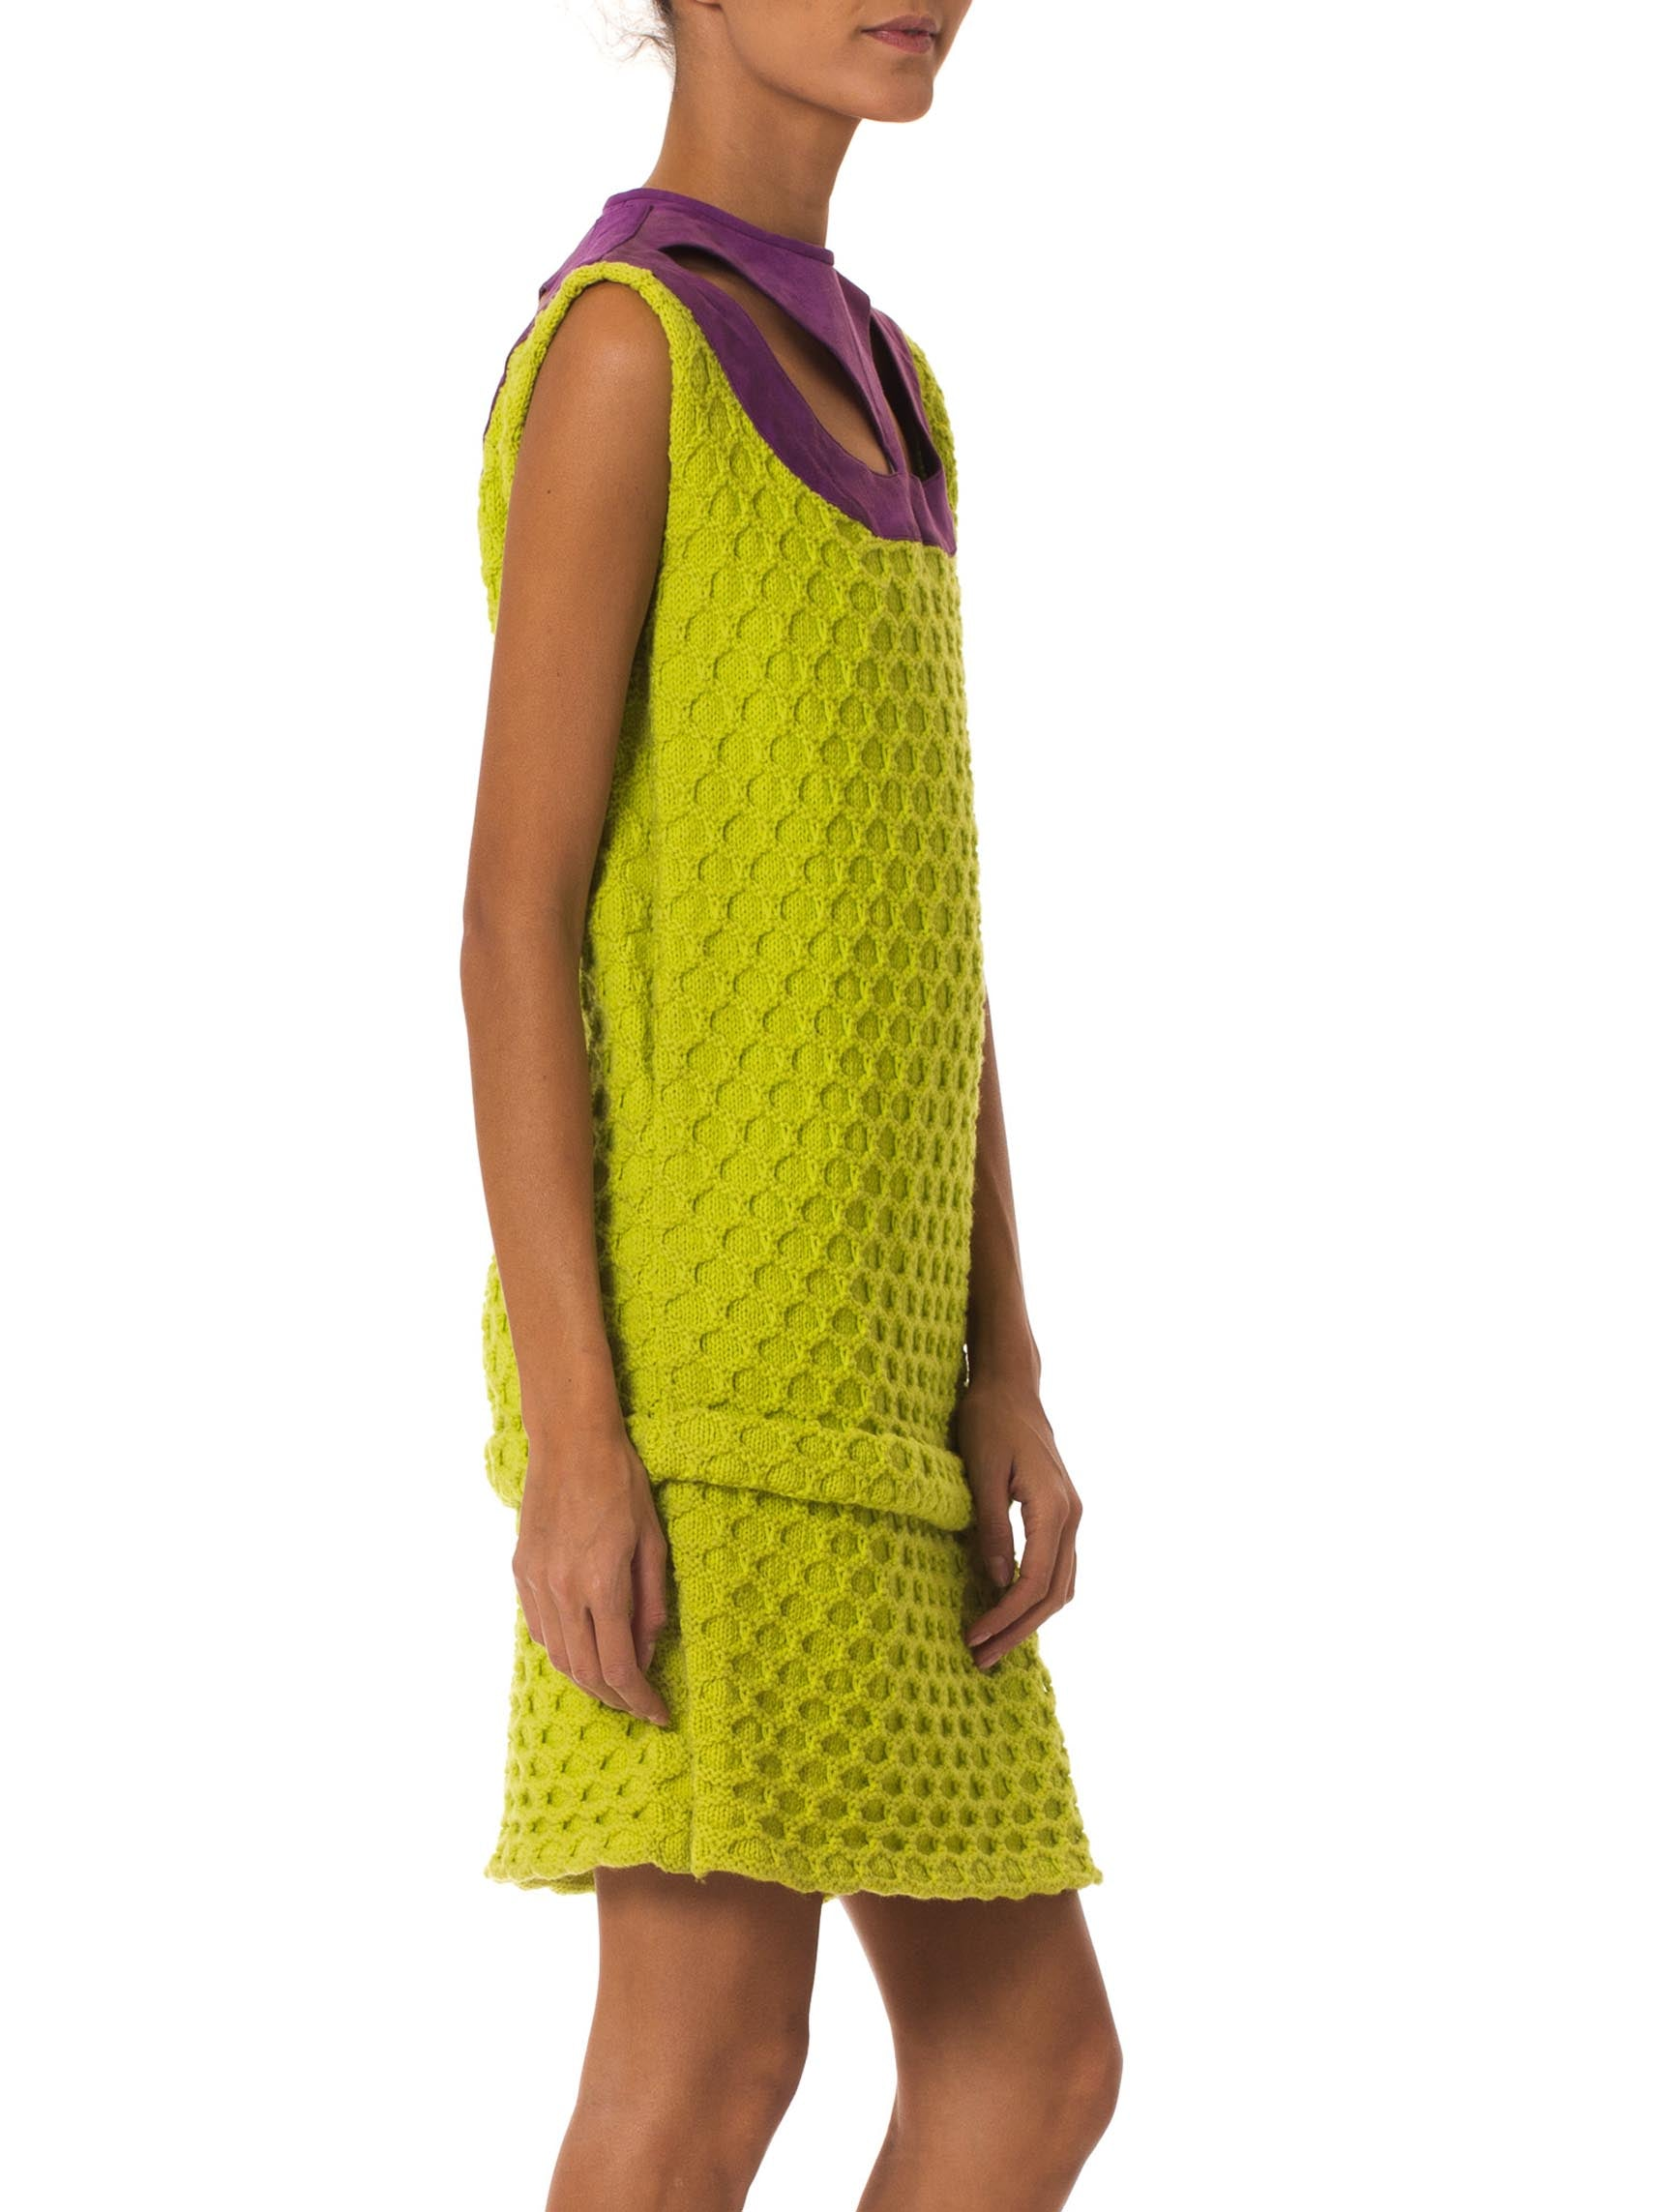 1960S Lime Green & Purple Wool Knit Dress With Suede Neckline